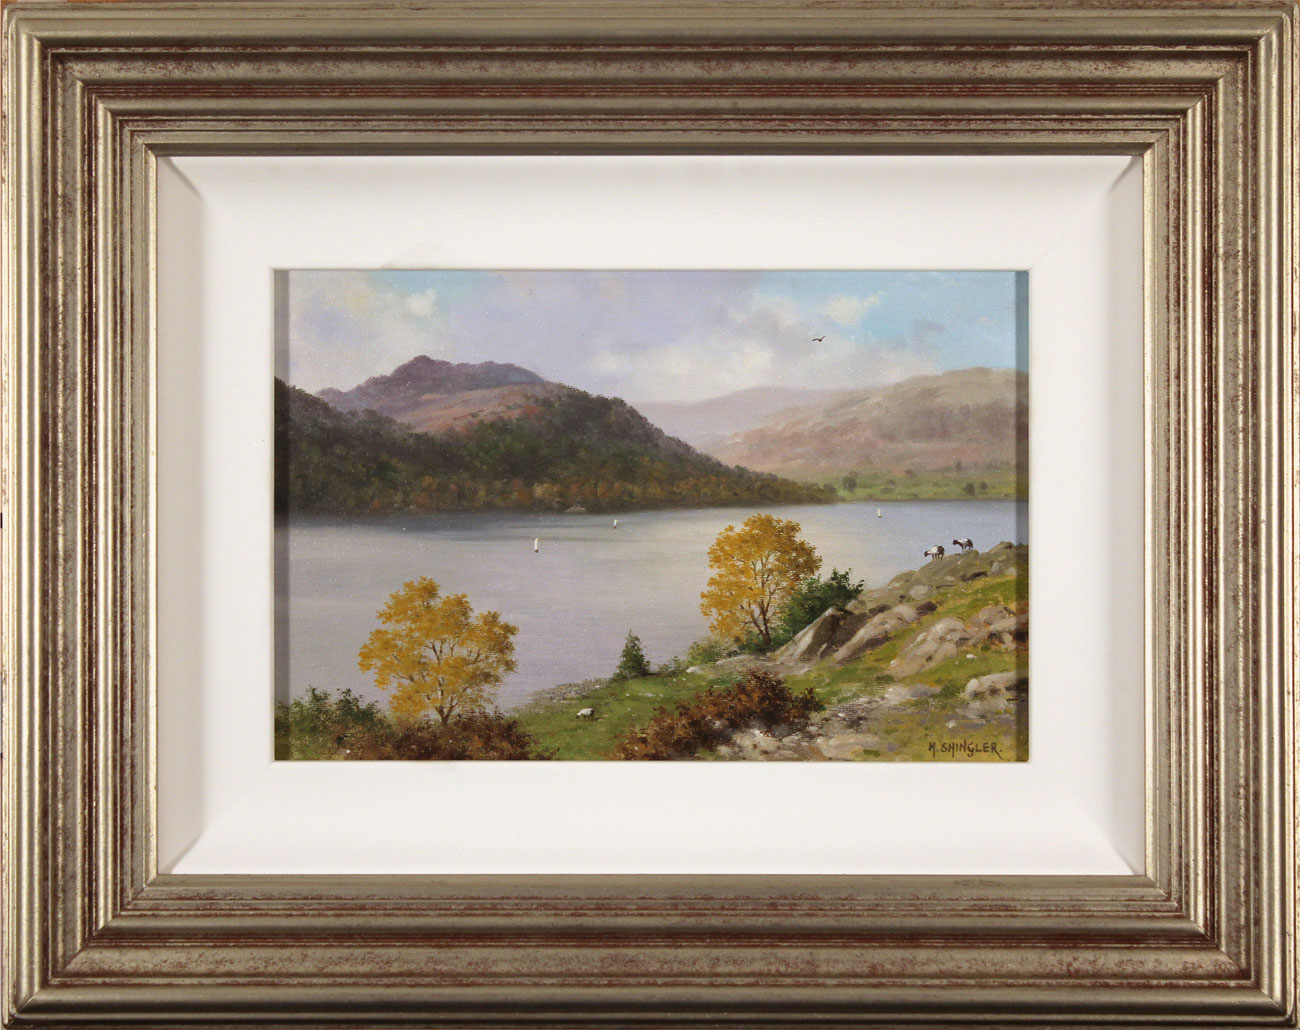 Howard Shingler, Original oil painting on panel, Sheffield Pike from Silver Point, Ullswater Click to enlarge